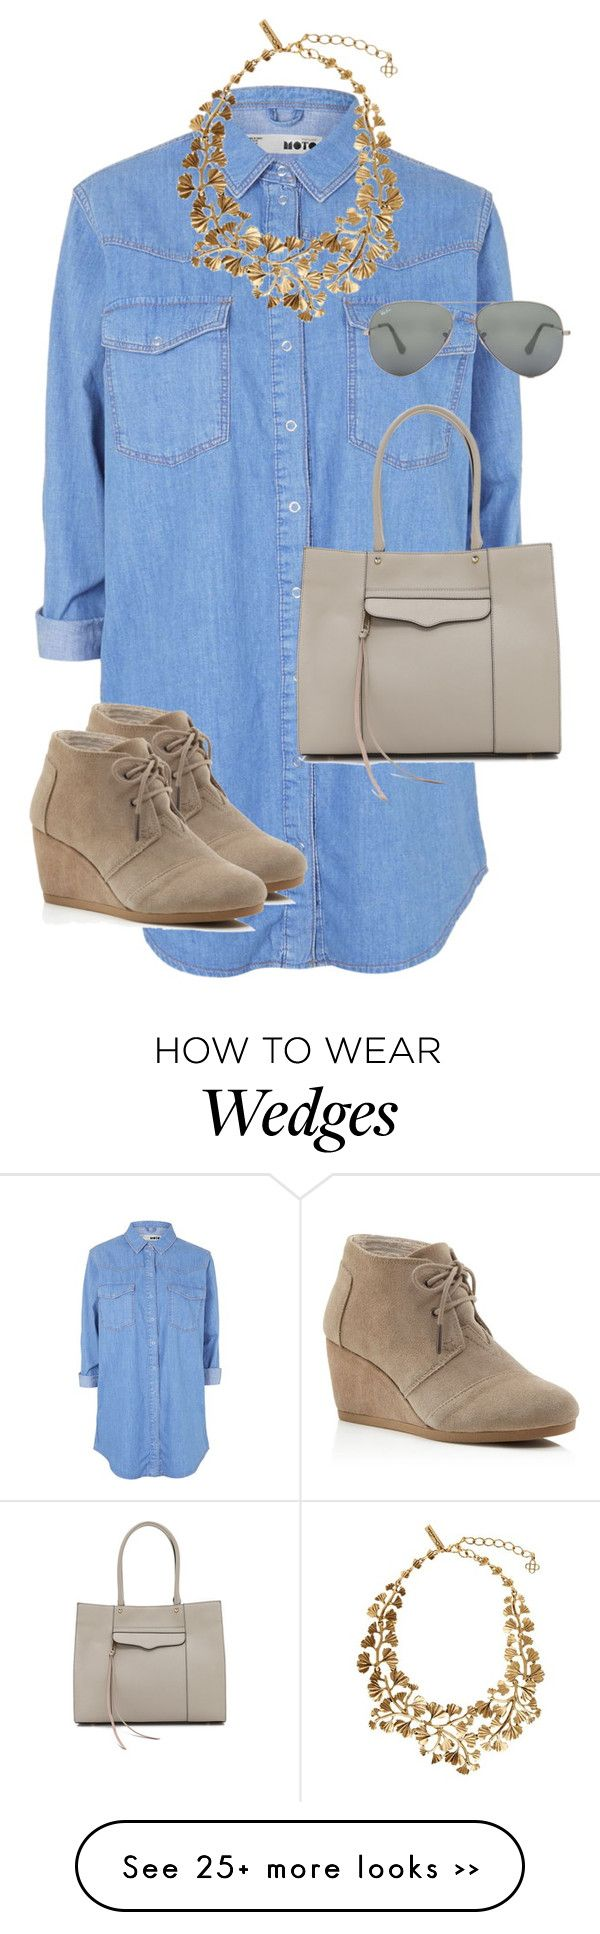 Untitled #9432 by alexsrogers on Polyvore featuring Topshop, TOMS, Ray-Ban, Oscar de la Renta and Rebecca Minkoff